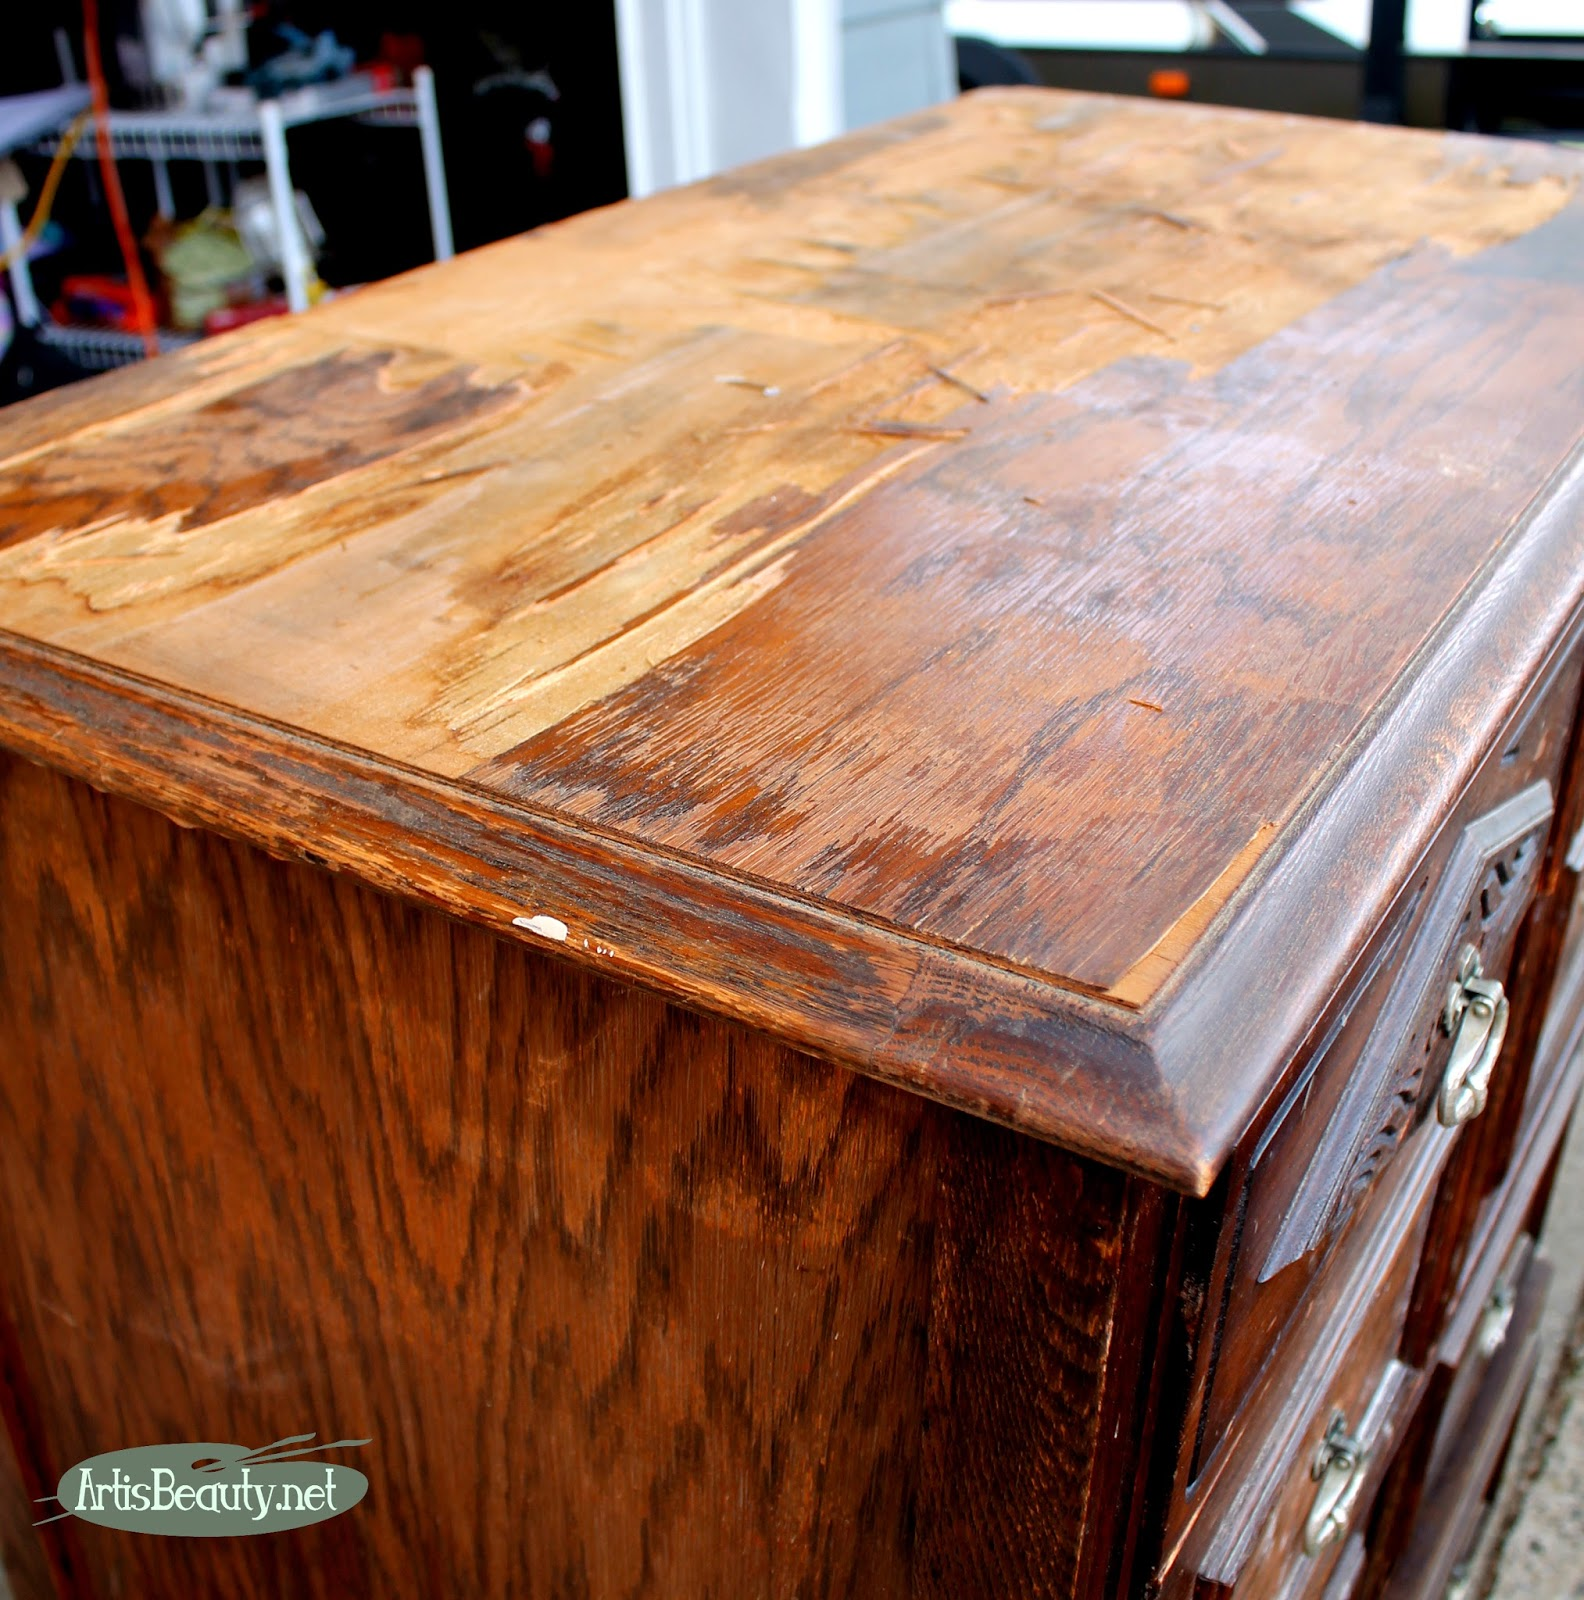 Damaged Furniture Sale: ART IS BEAUTY: Before And After Rescued Dresser Makeover